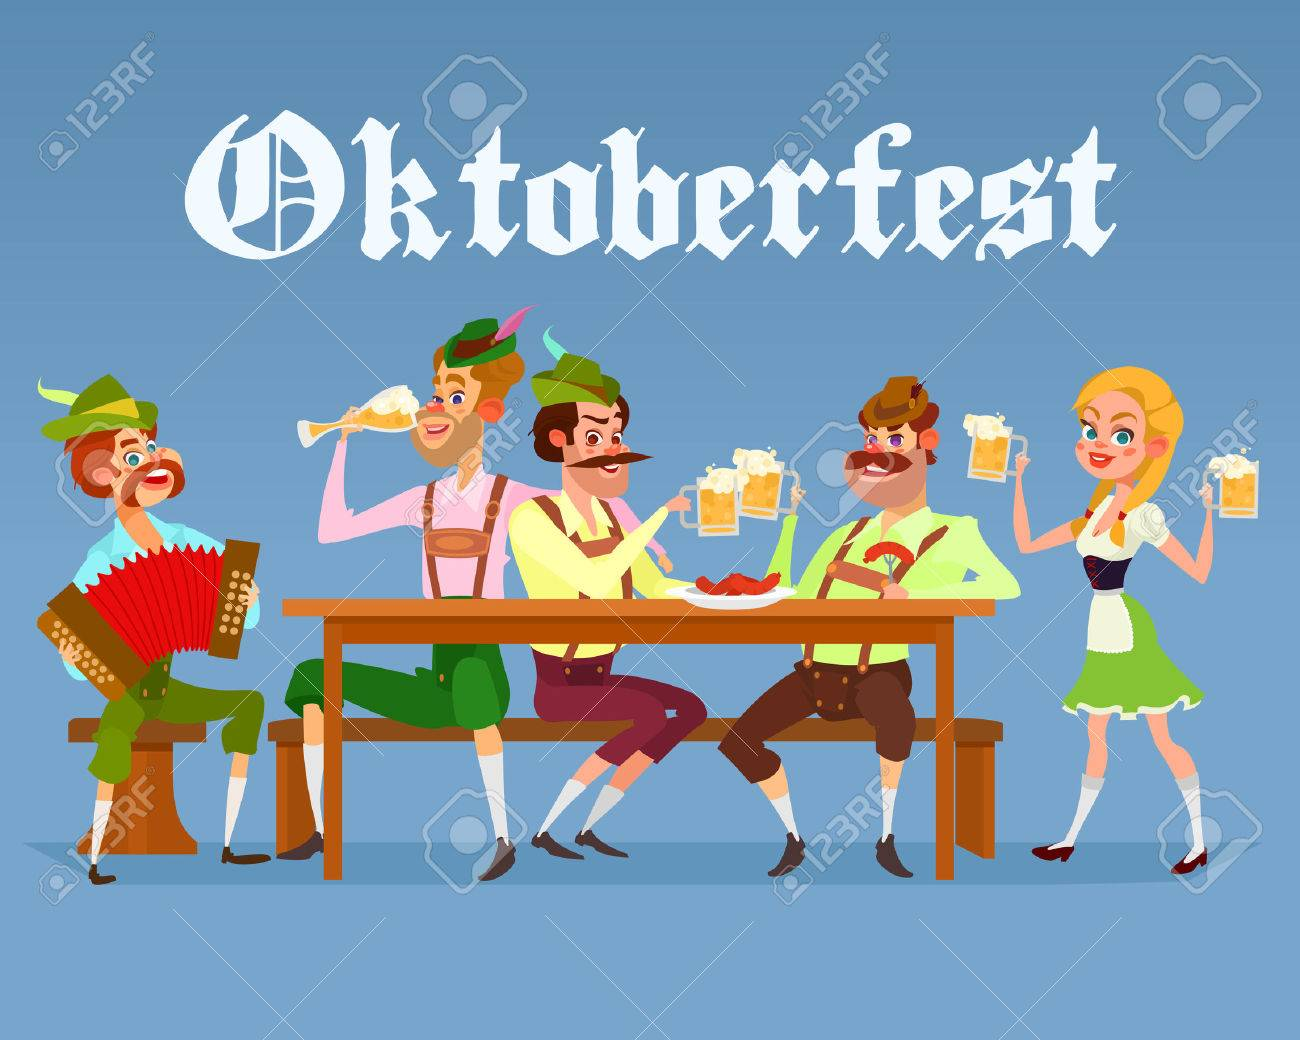 Traditional european roulette table vector illustration stock vector - European Table Cartoon Illustration Of Funny Men Drinking Beer During A Beer Festival Greeting